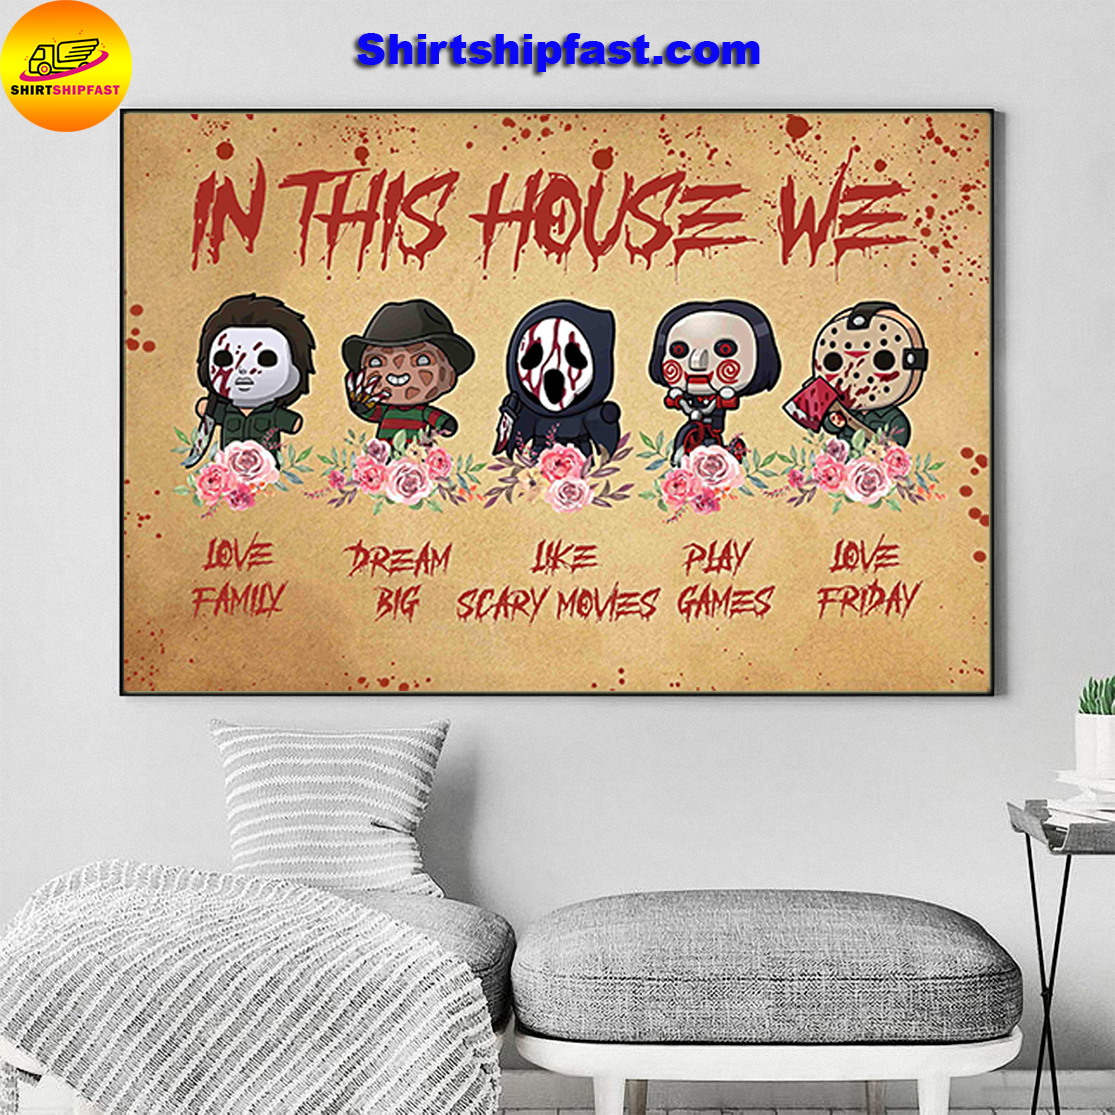 Horror movies chibi in this house we poster - Picture 3